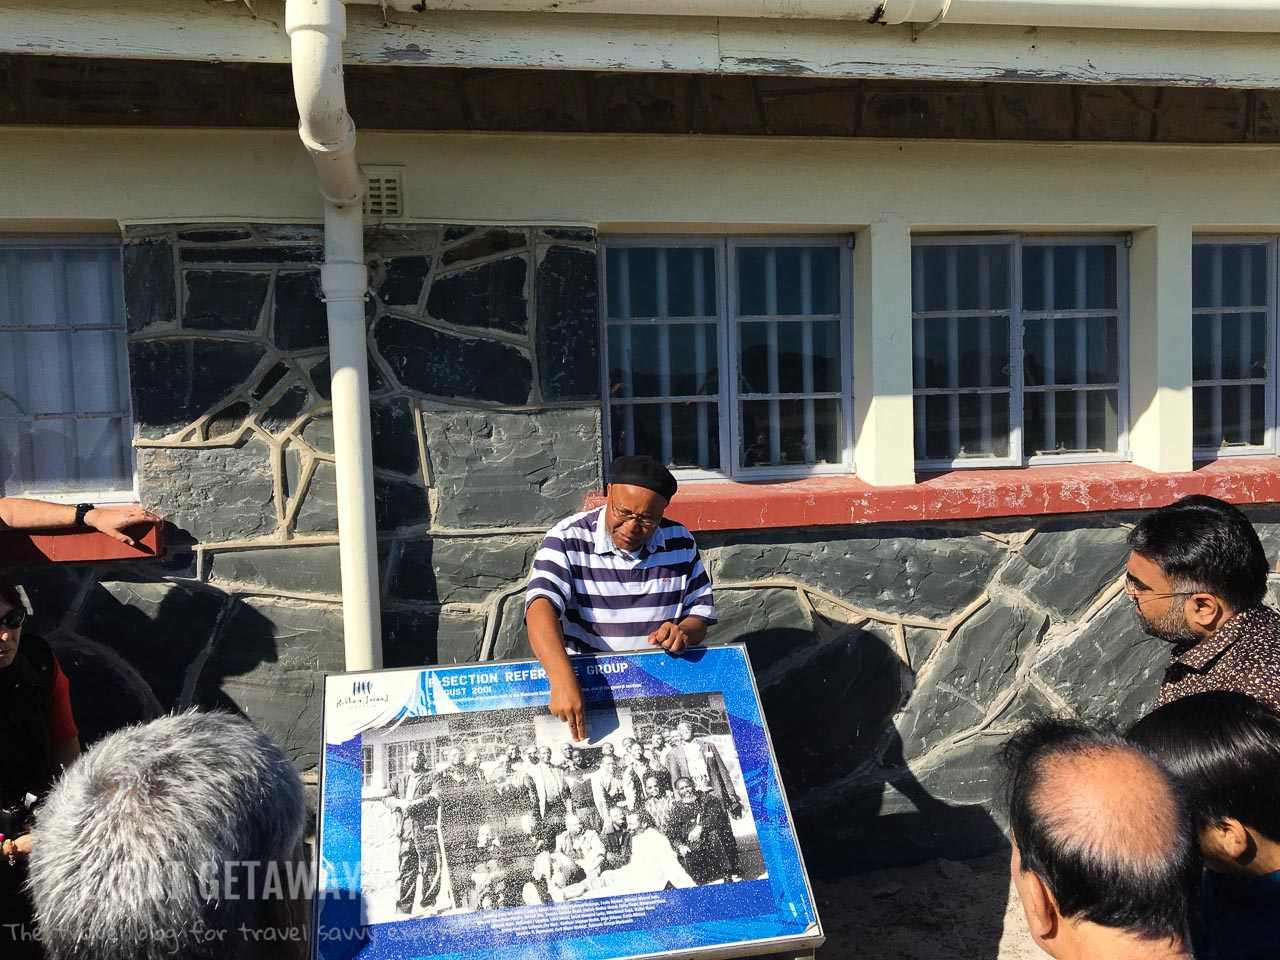 Hearing from a former political prisoner in the maximum security prison on Robben Island is a very moving experience for your visit to Cape Town, South Africa. Expat Getaways Expat Getaways One Week in Cape Town.